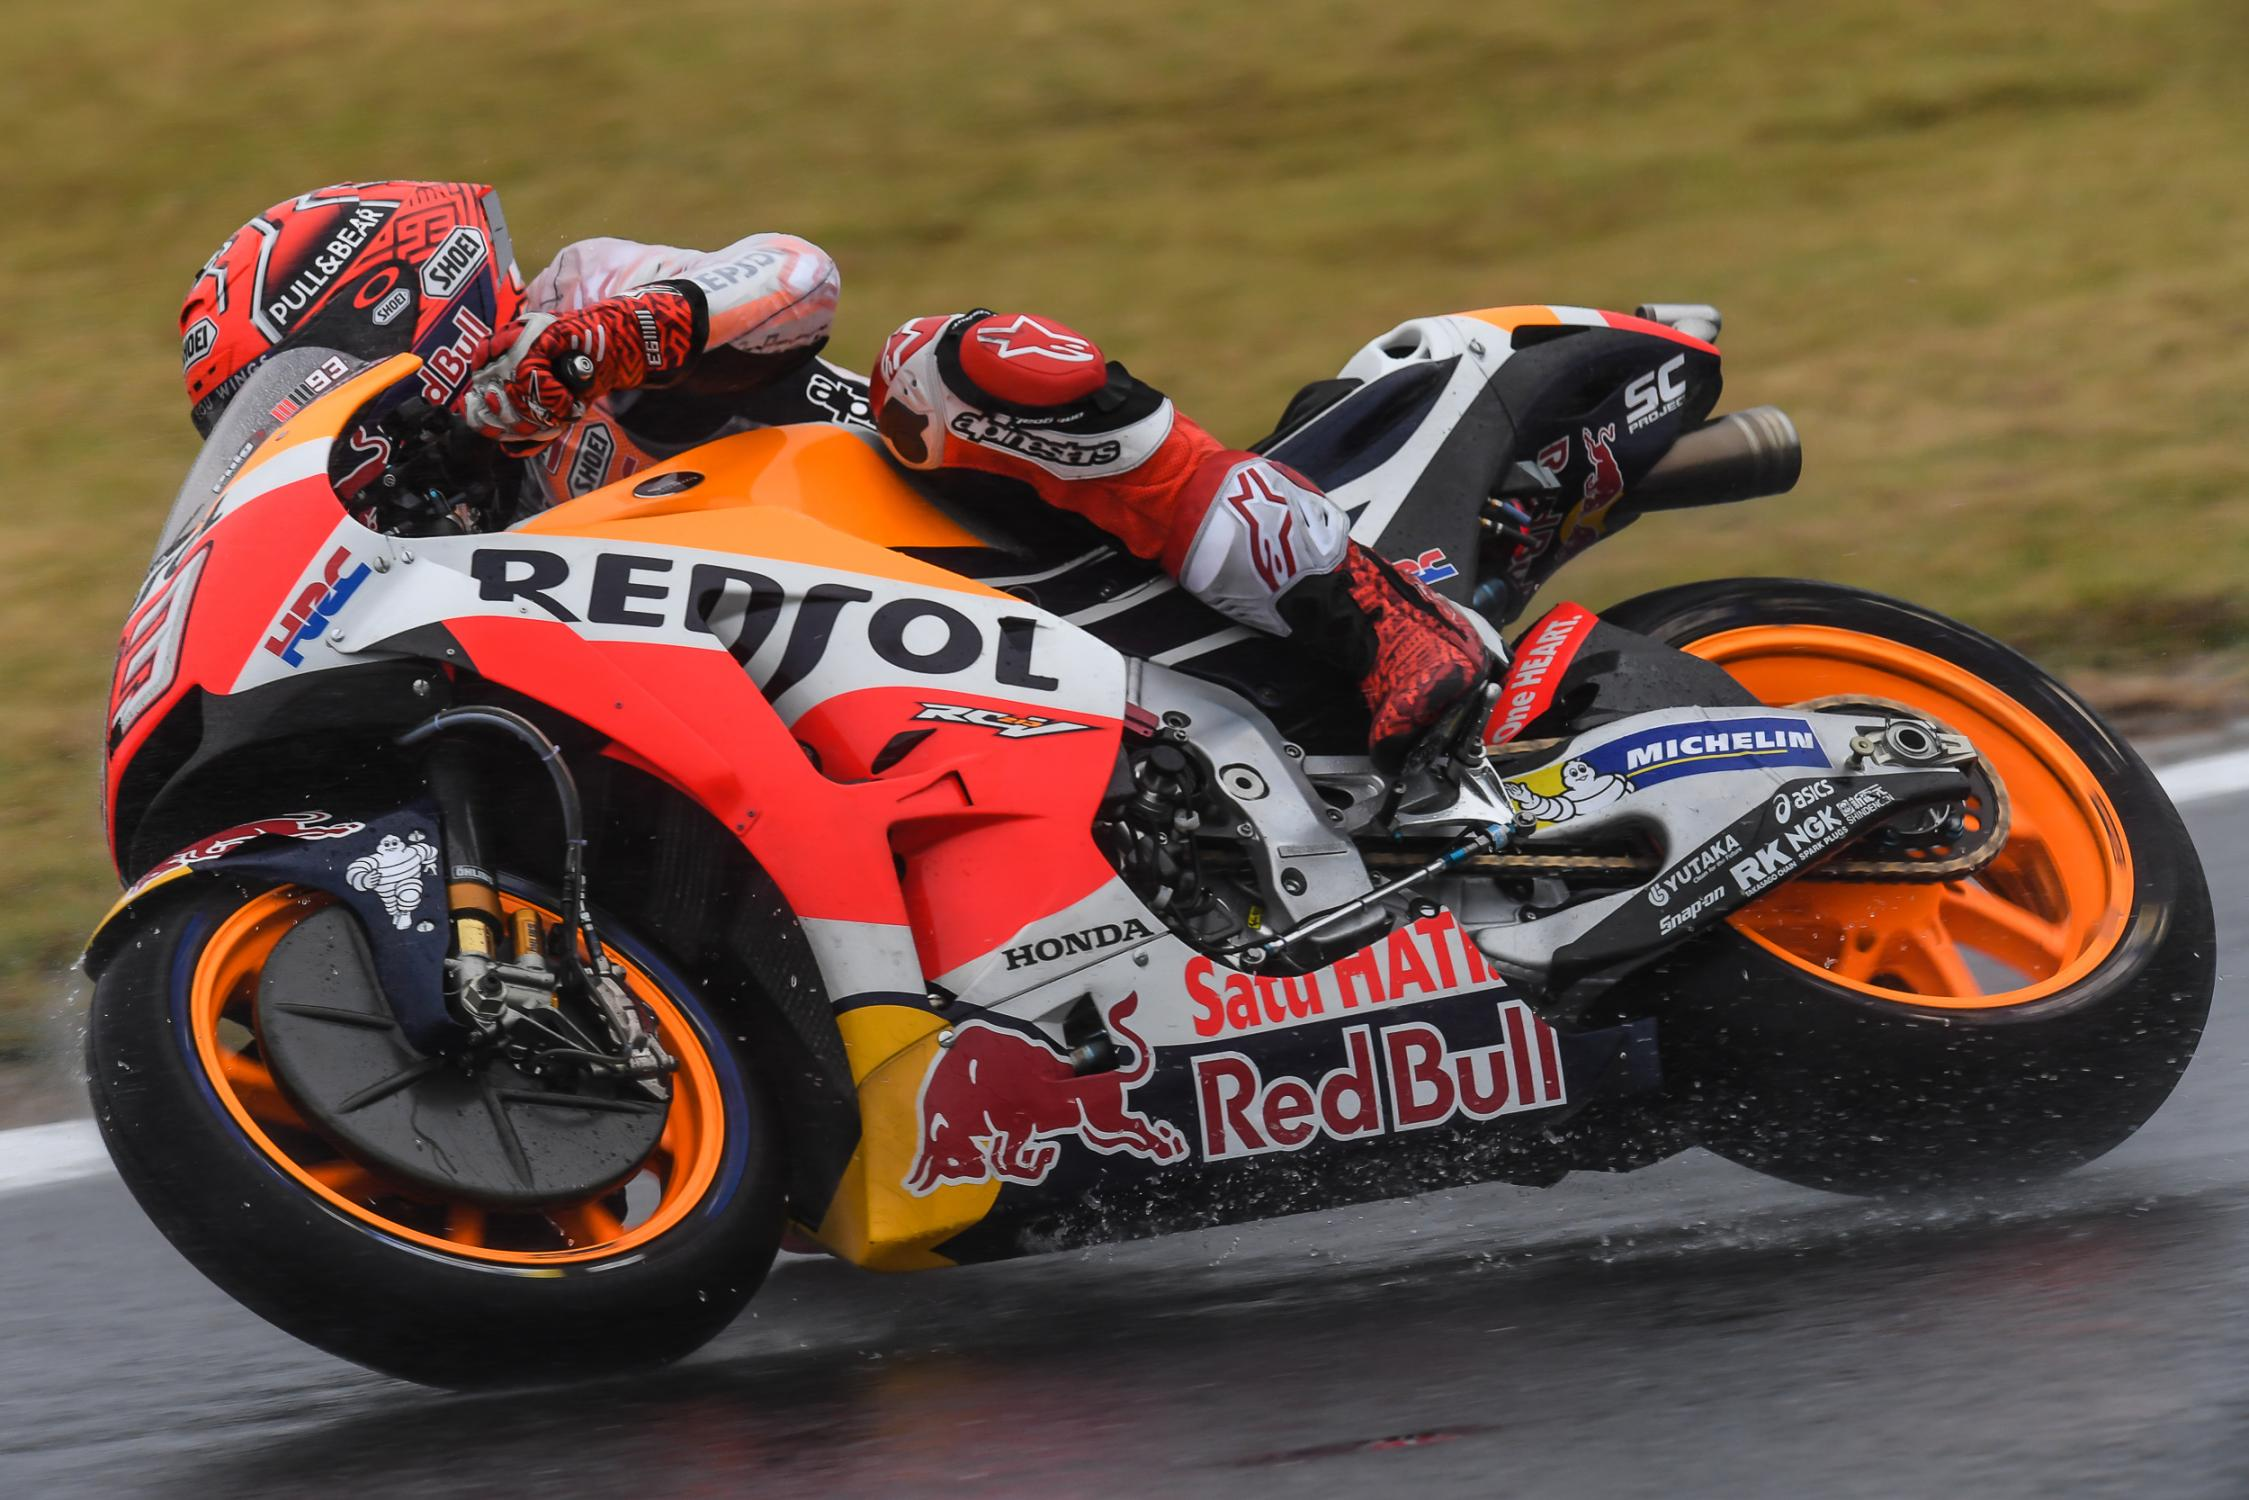 93-marc-marquez-espdsc_0869.gallery_full_top_fullscreen.jpg